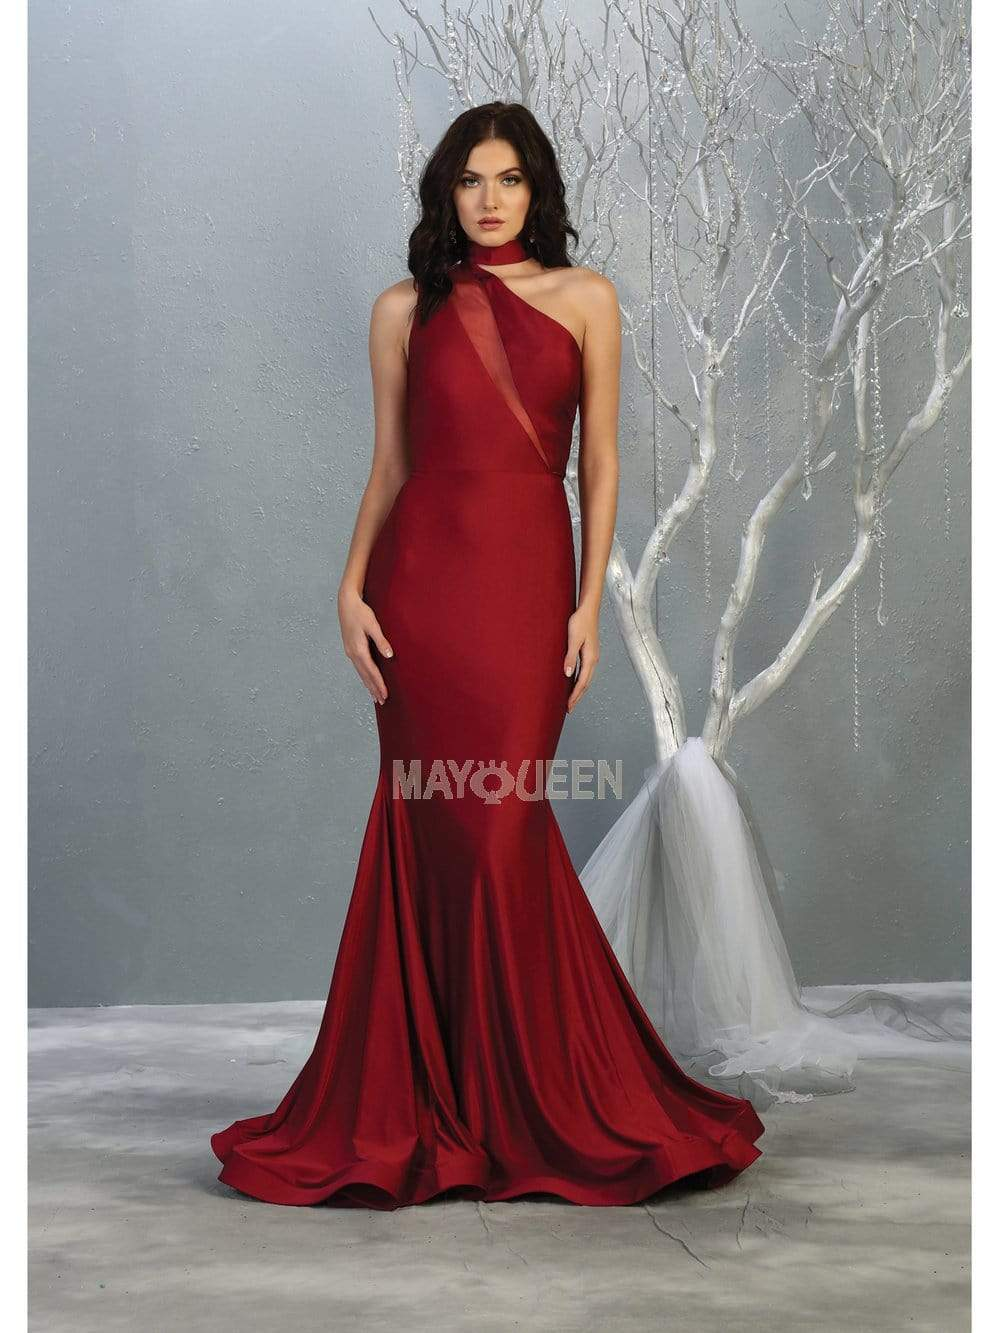 May Queen - MQ1773 Choker Ornate Illusion Paneled Trumpet Dress Evening Dresses 2 / Burgundy